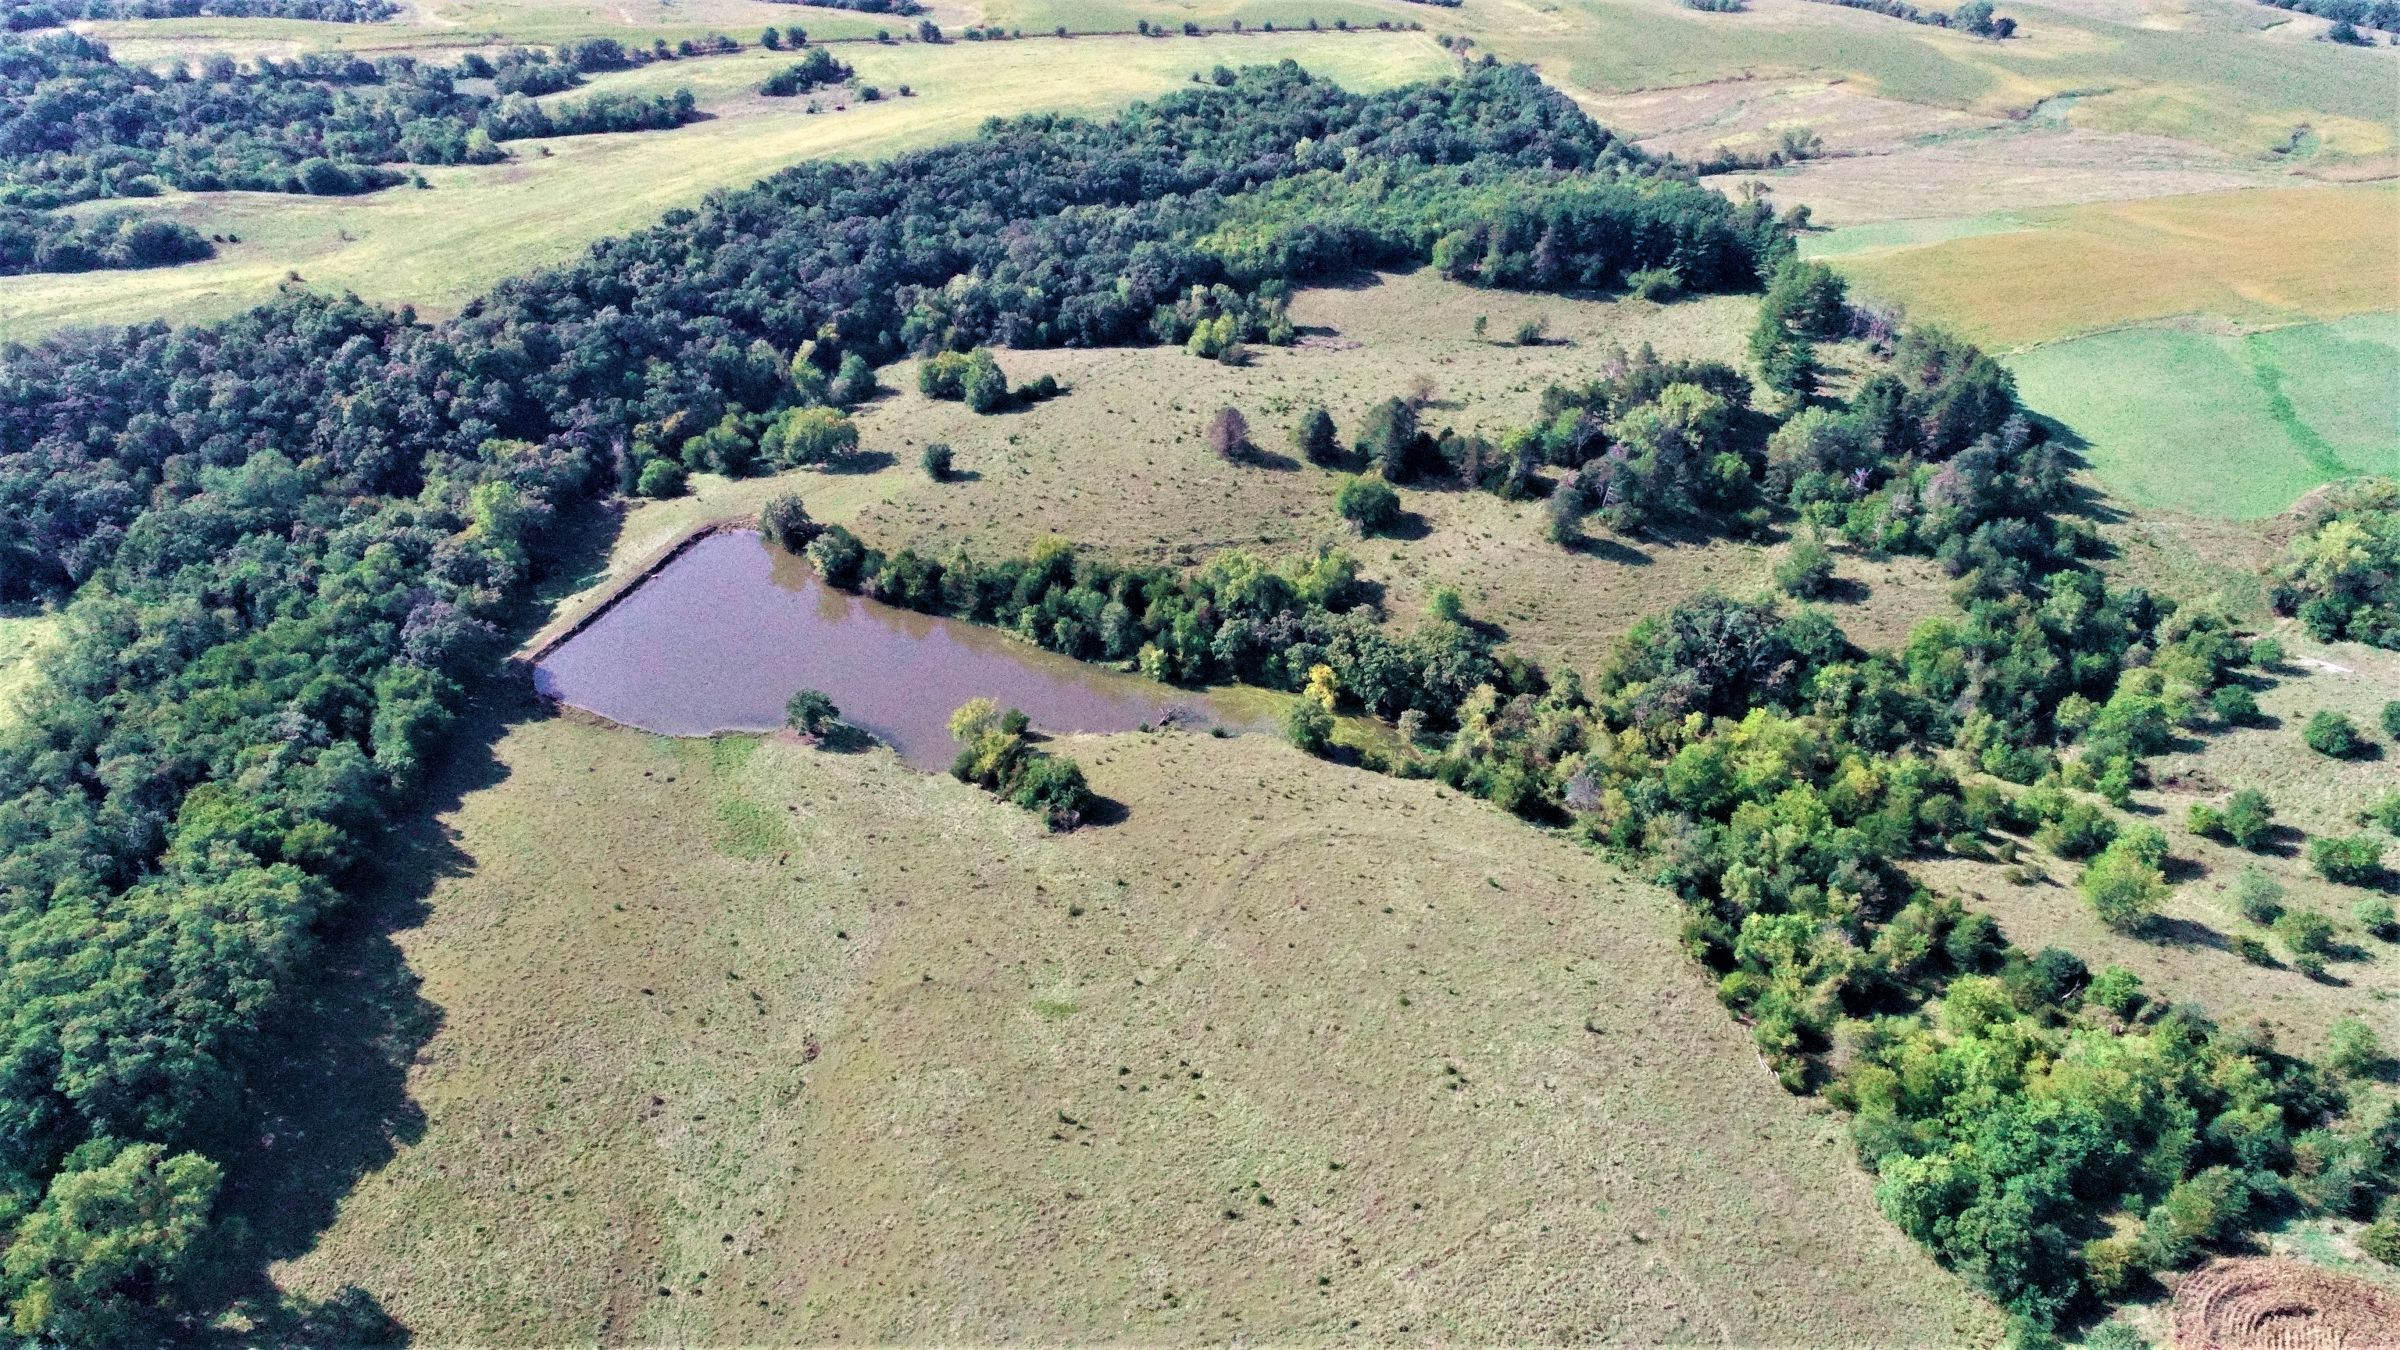 madison-county-iowa-76-acres-listing-number-15209-3-2020-10-12-175955.jpg